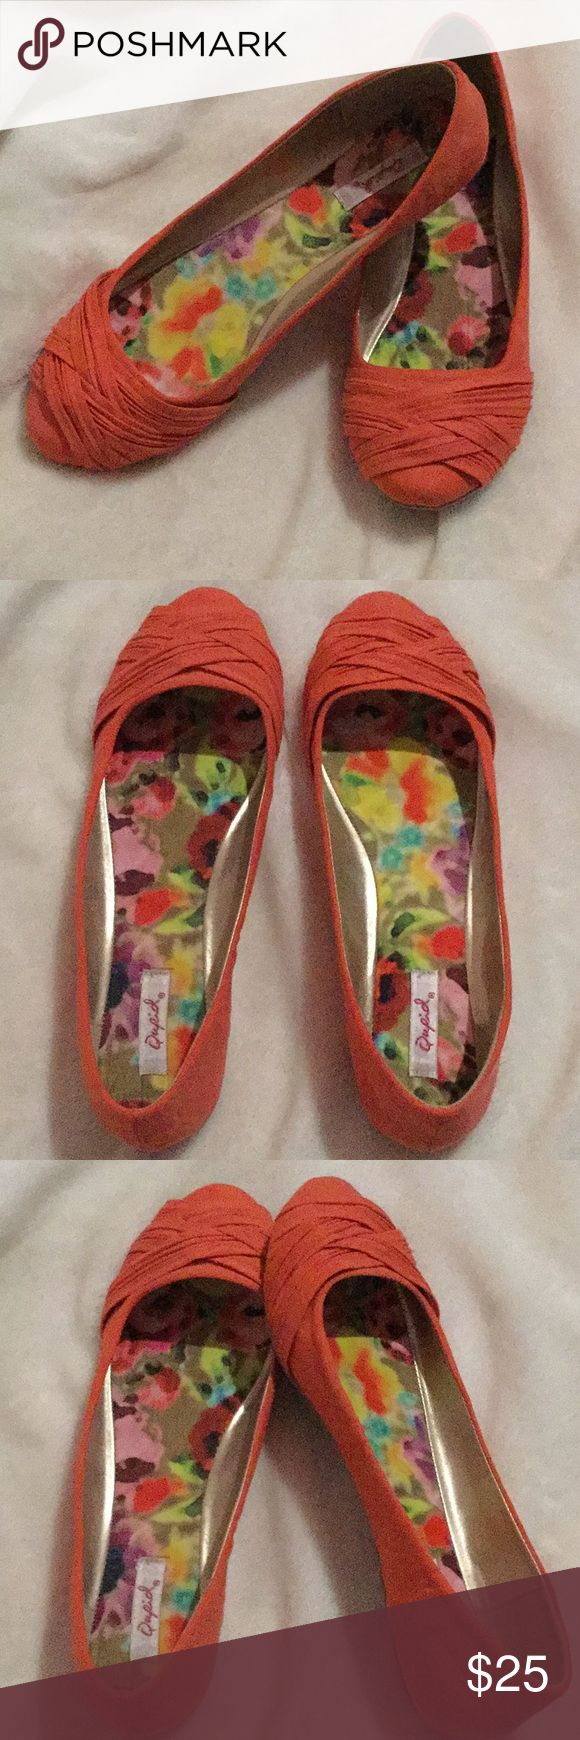 Coral Flats Coral flats with floral print in soles. Never worn. Qupid Shoes Flats & Loafers